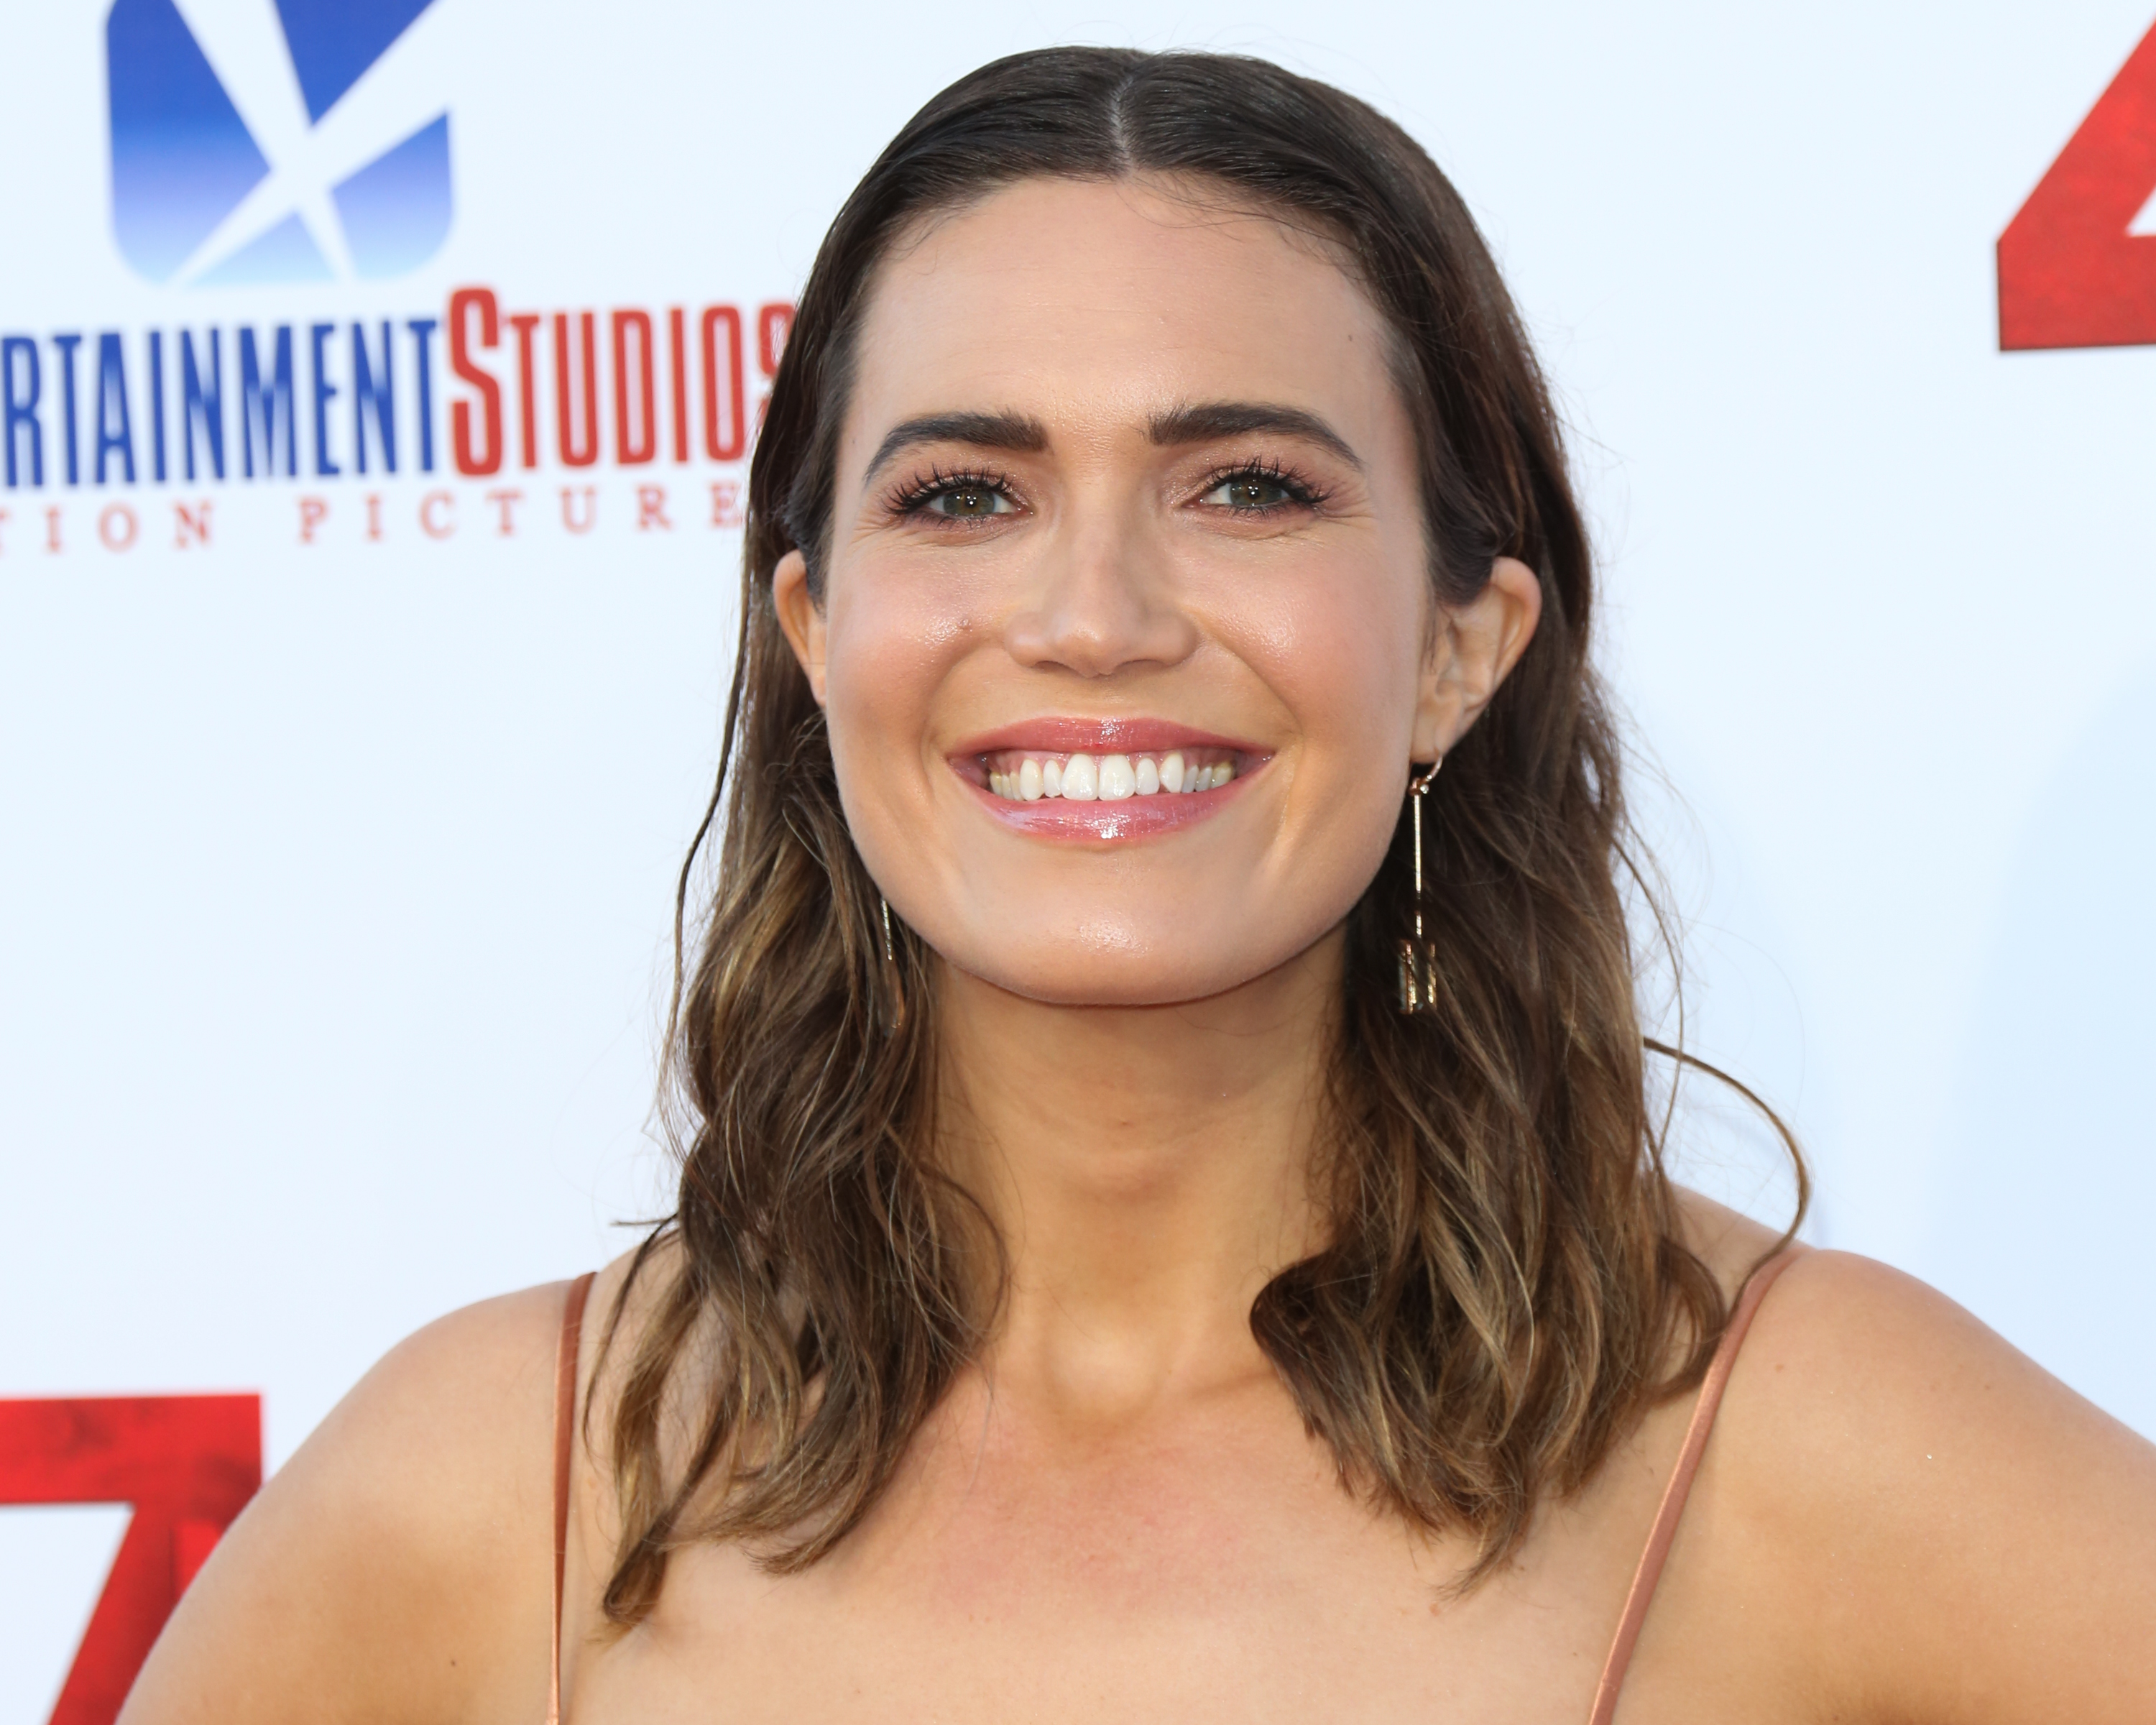 If you love Mandy Moore, then you're definitely going to love her home decor collection